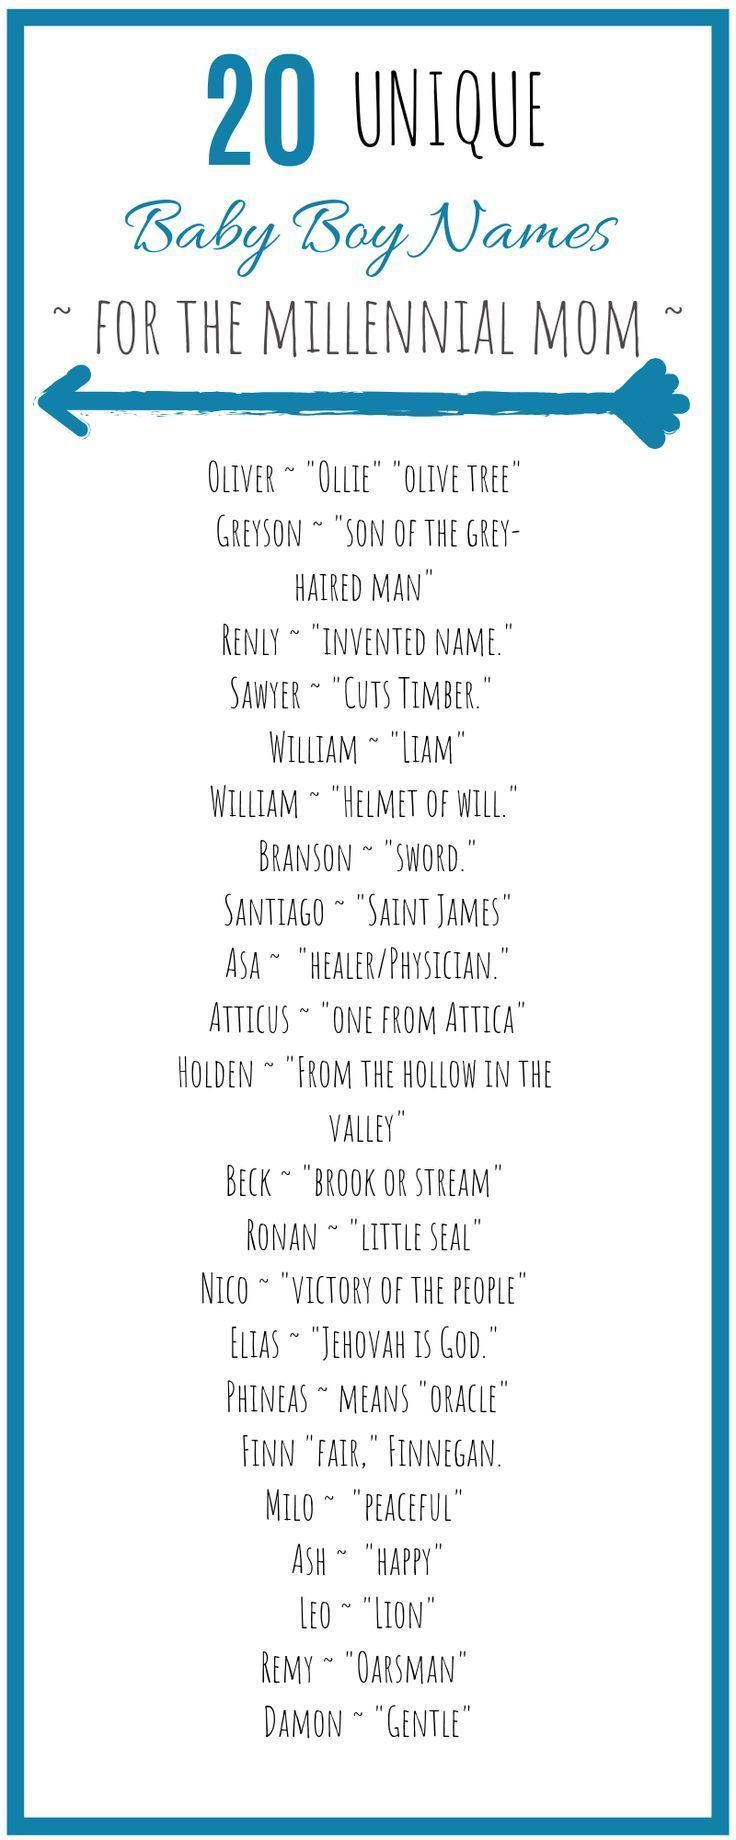 Unique Millennial Baby Boy Names